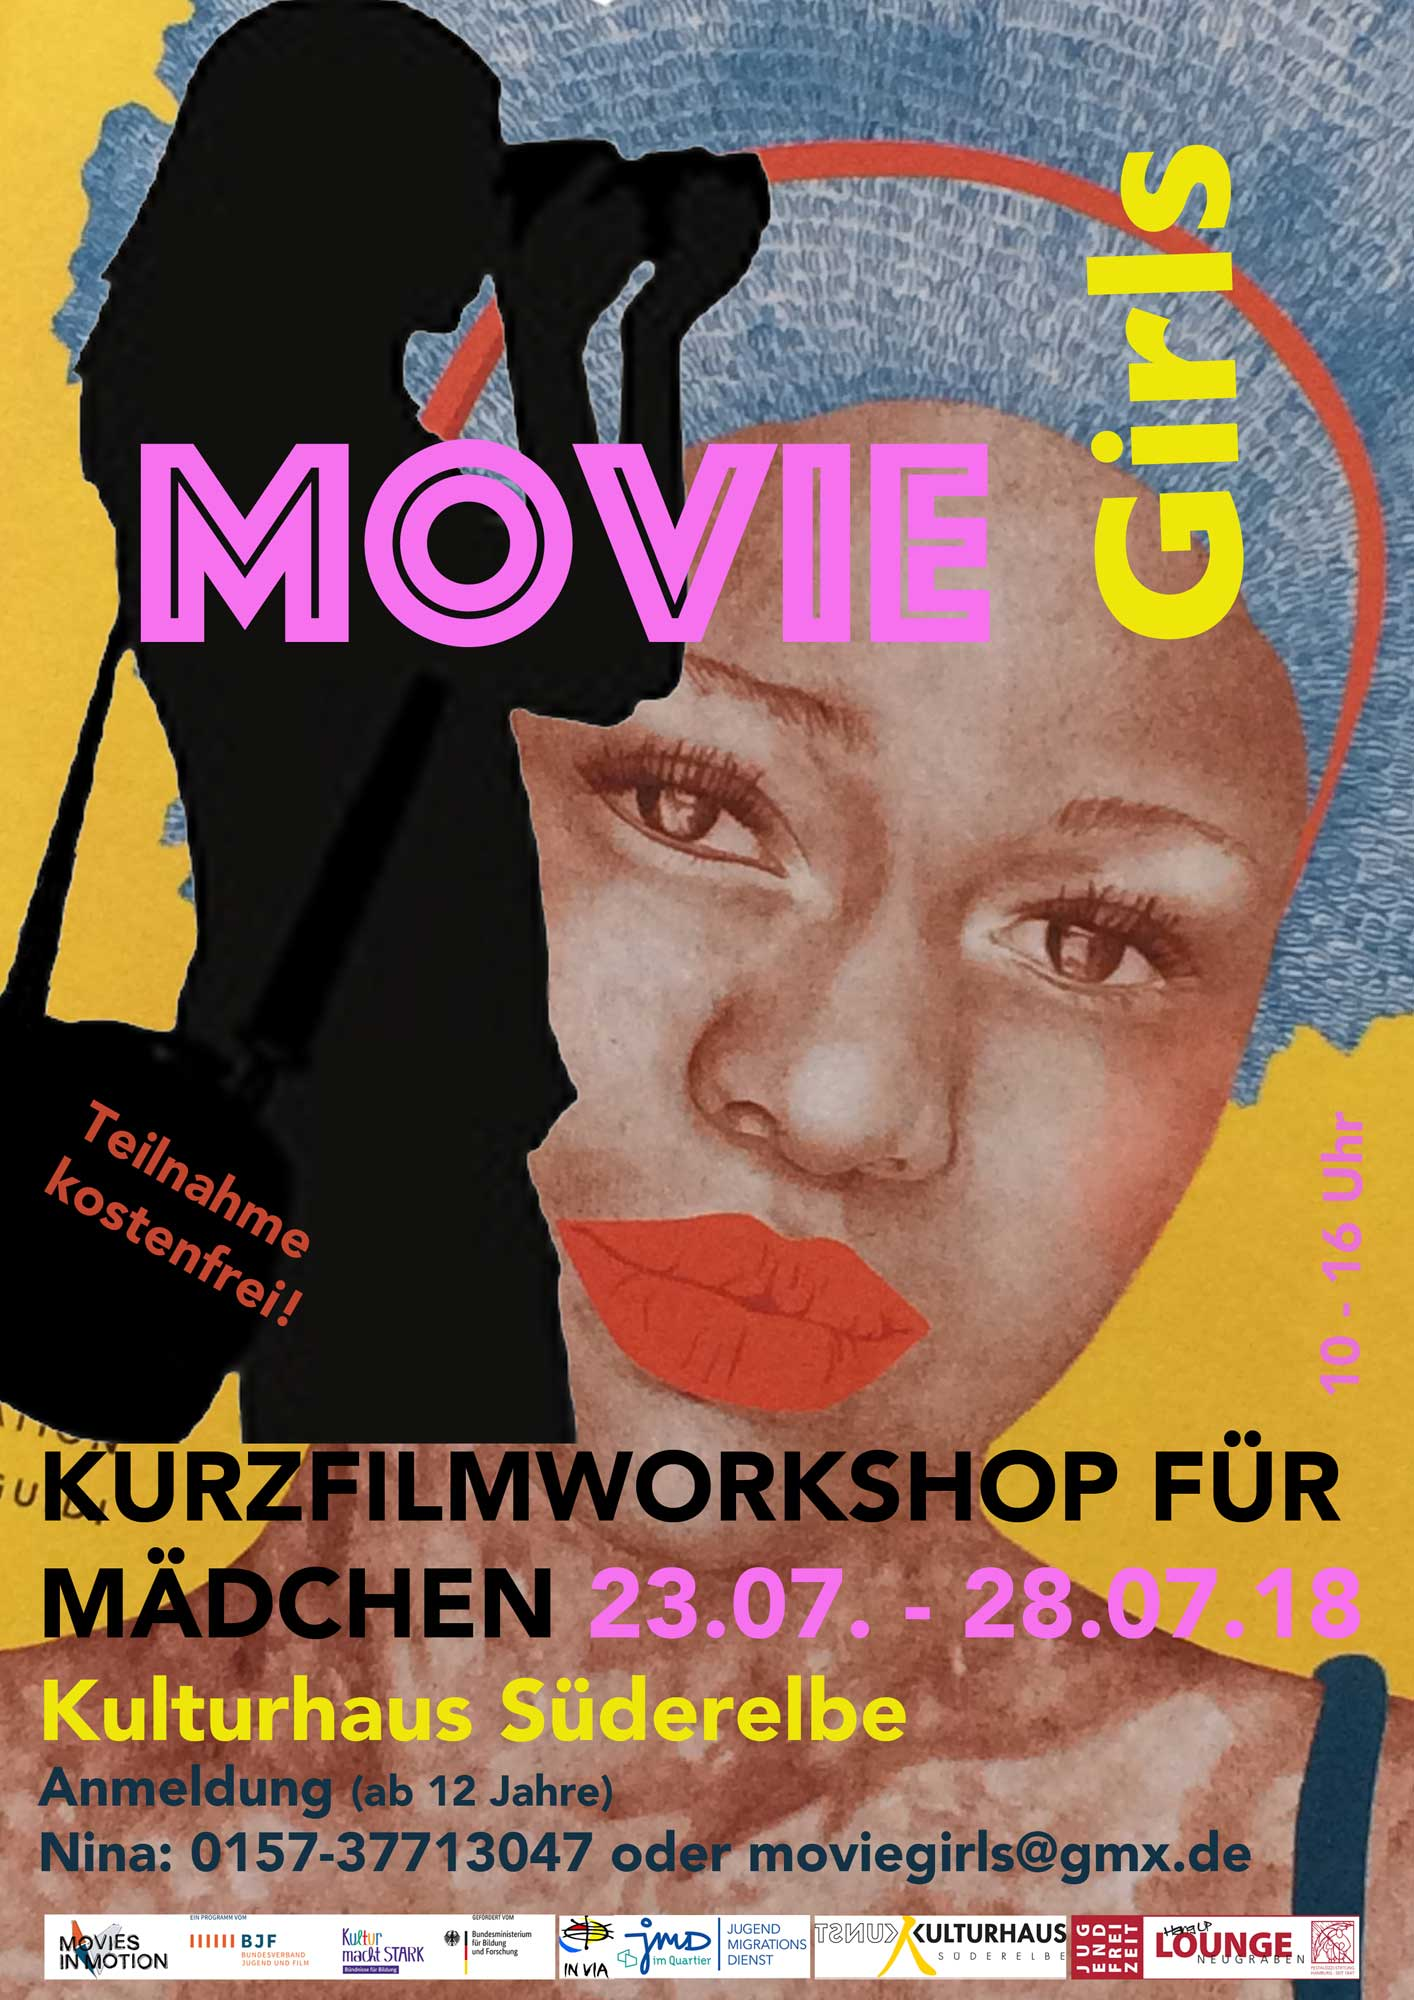 Moviegirls1 50322 MOVIE Girls   Kurzfilmworkshop für Mädchen